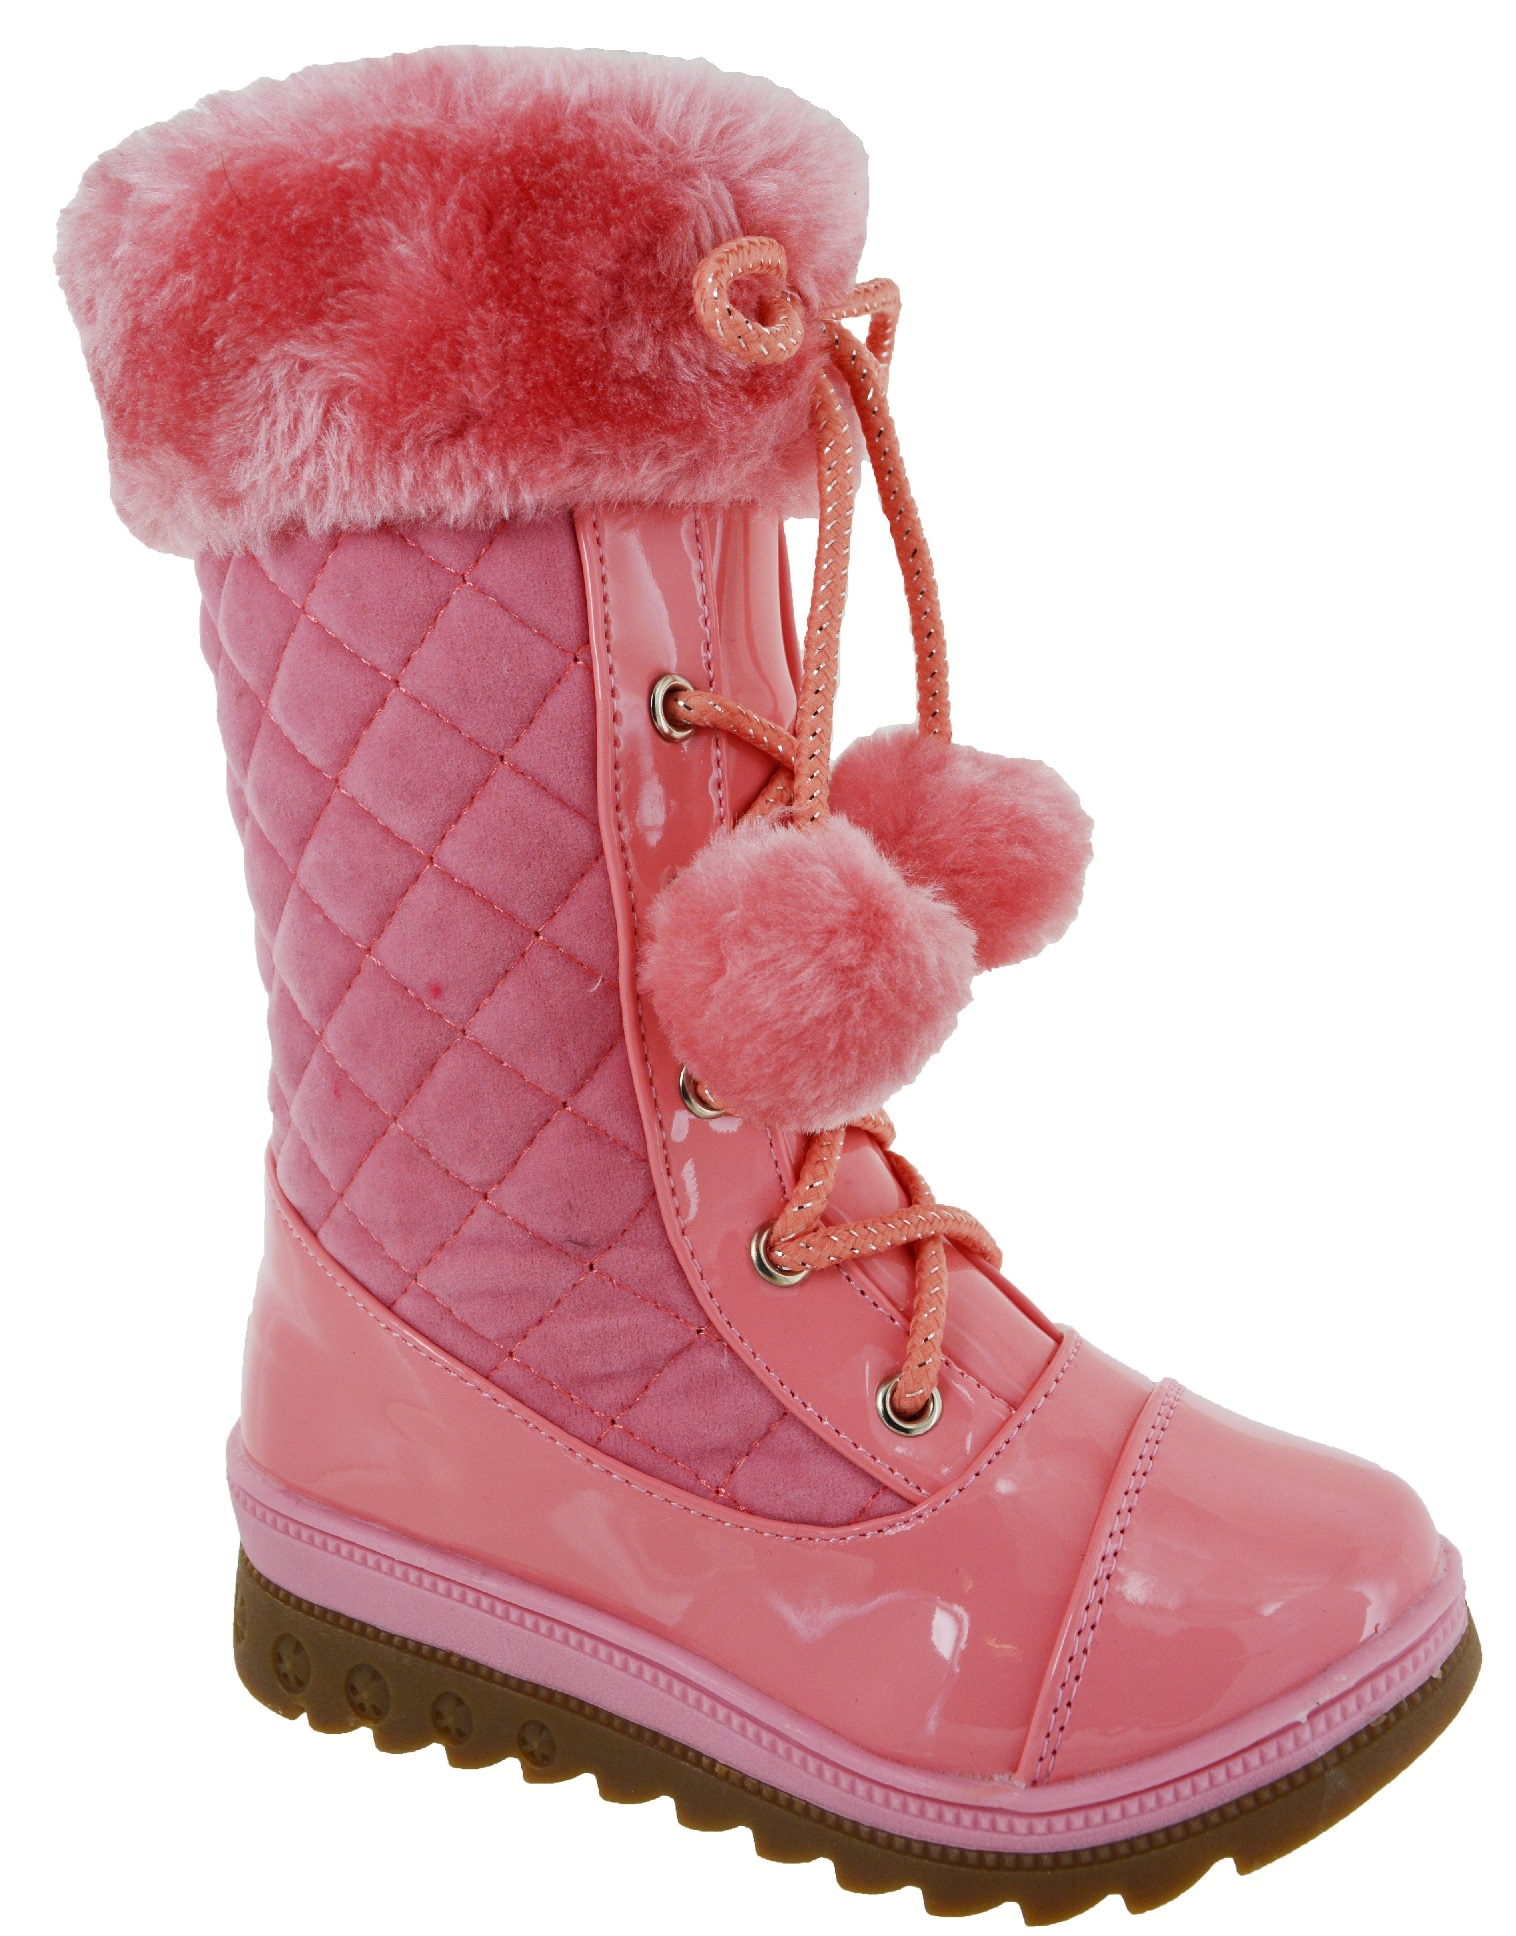 Details about  /Women Girls Winter Warm Snow Mid Calf Boots Thicken Wedge Round Toe Creepers New